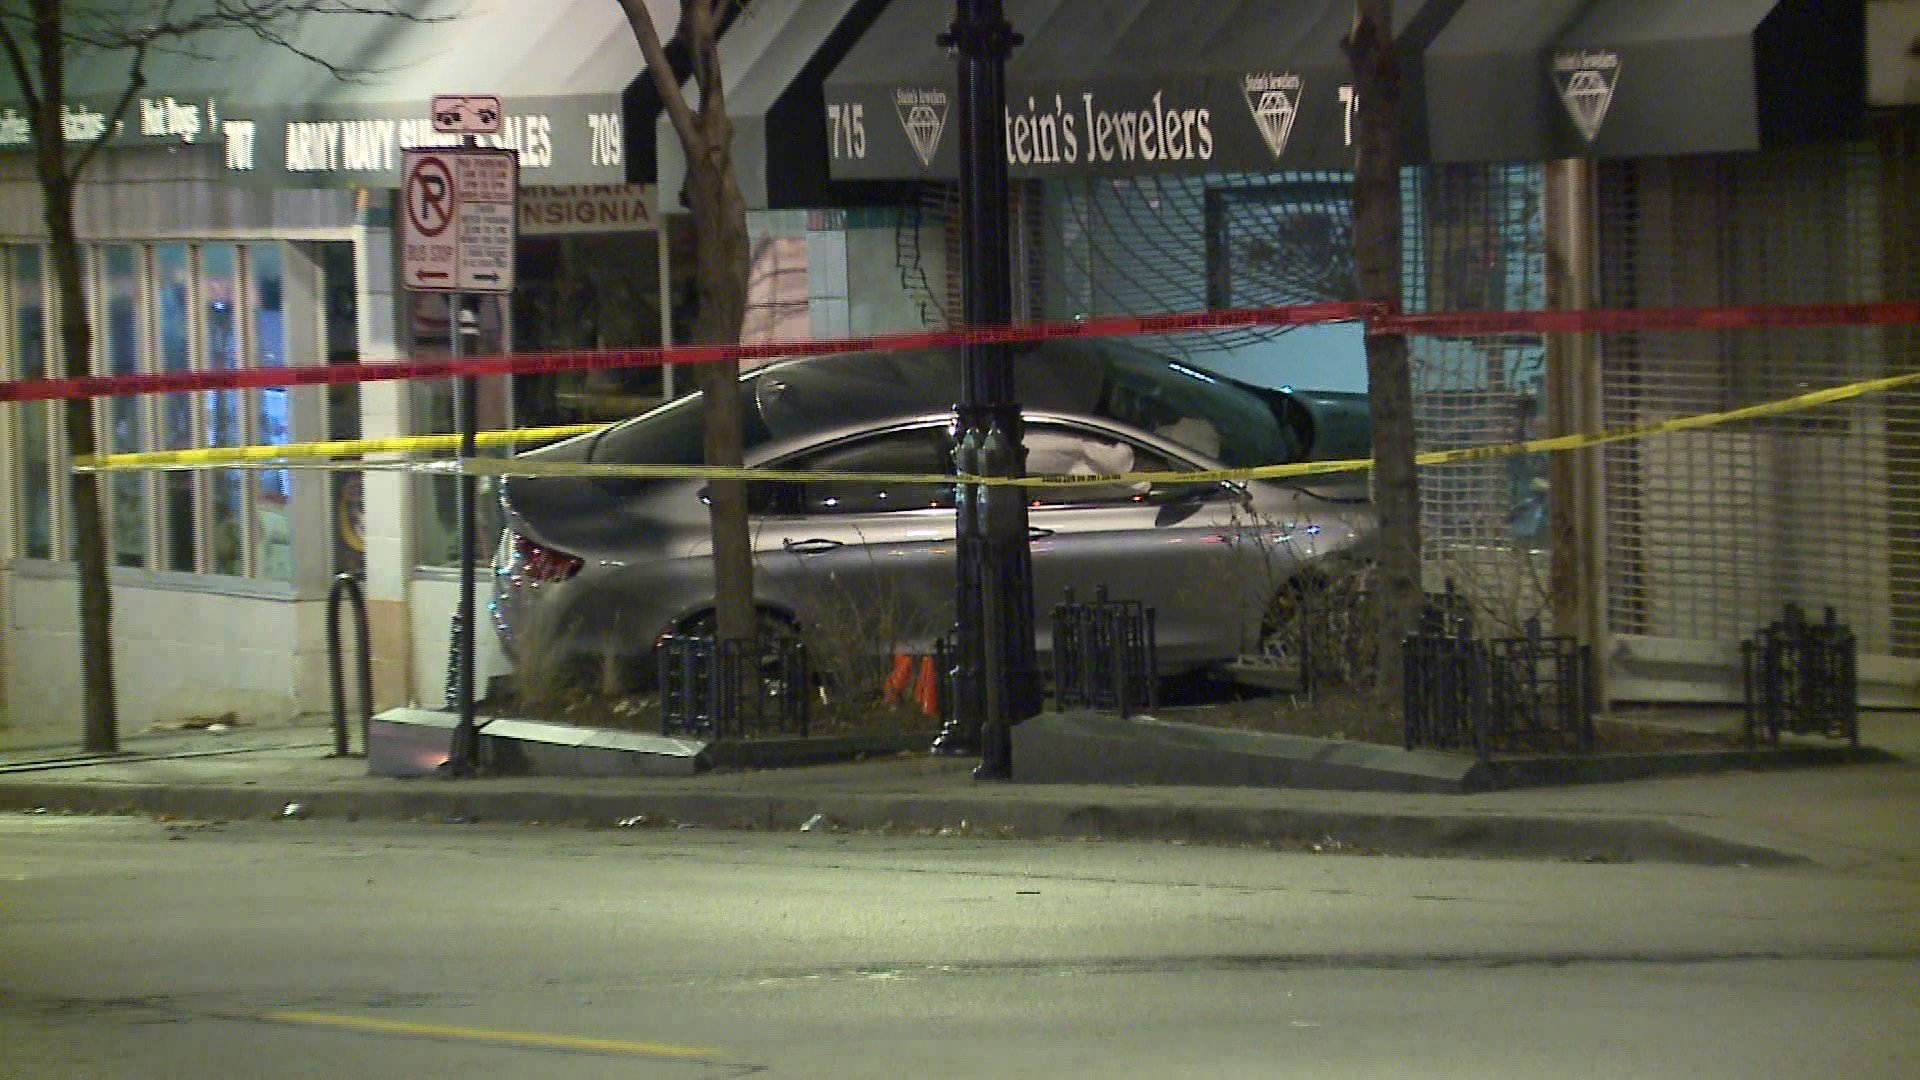 01 20 race through downtown milwaukee ends with car in building